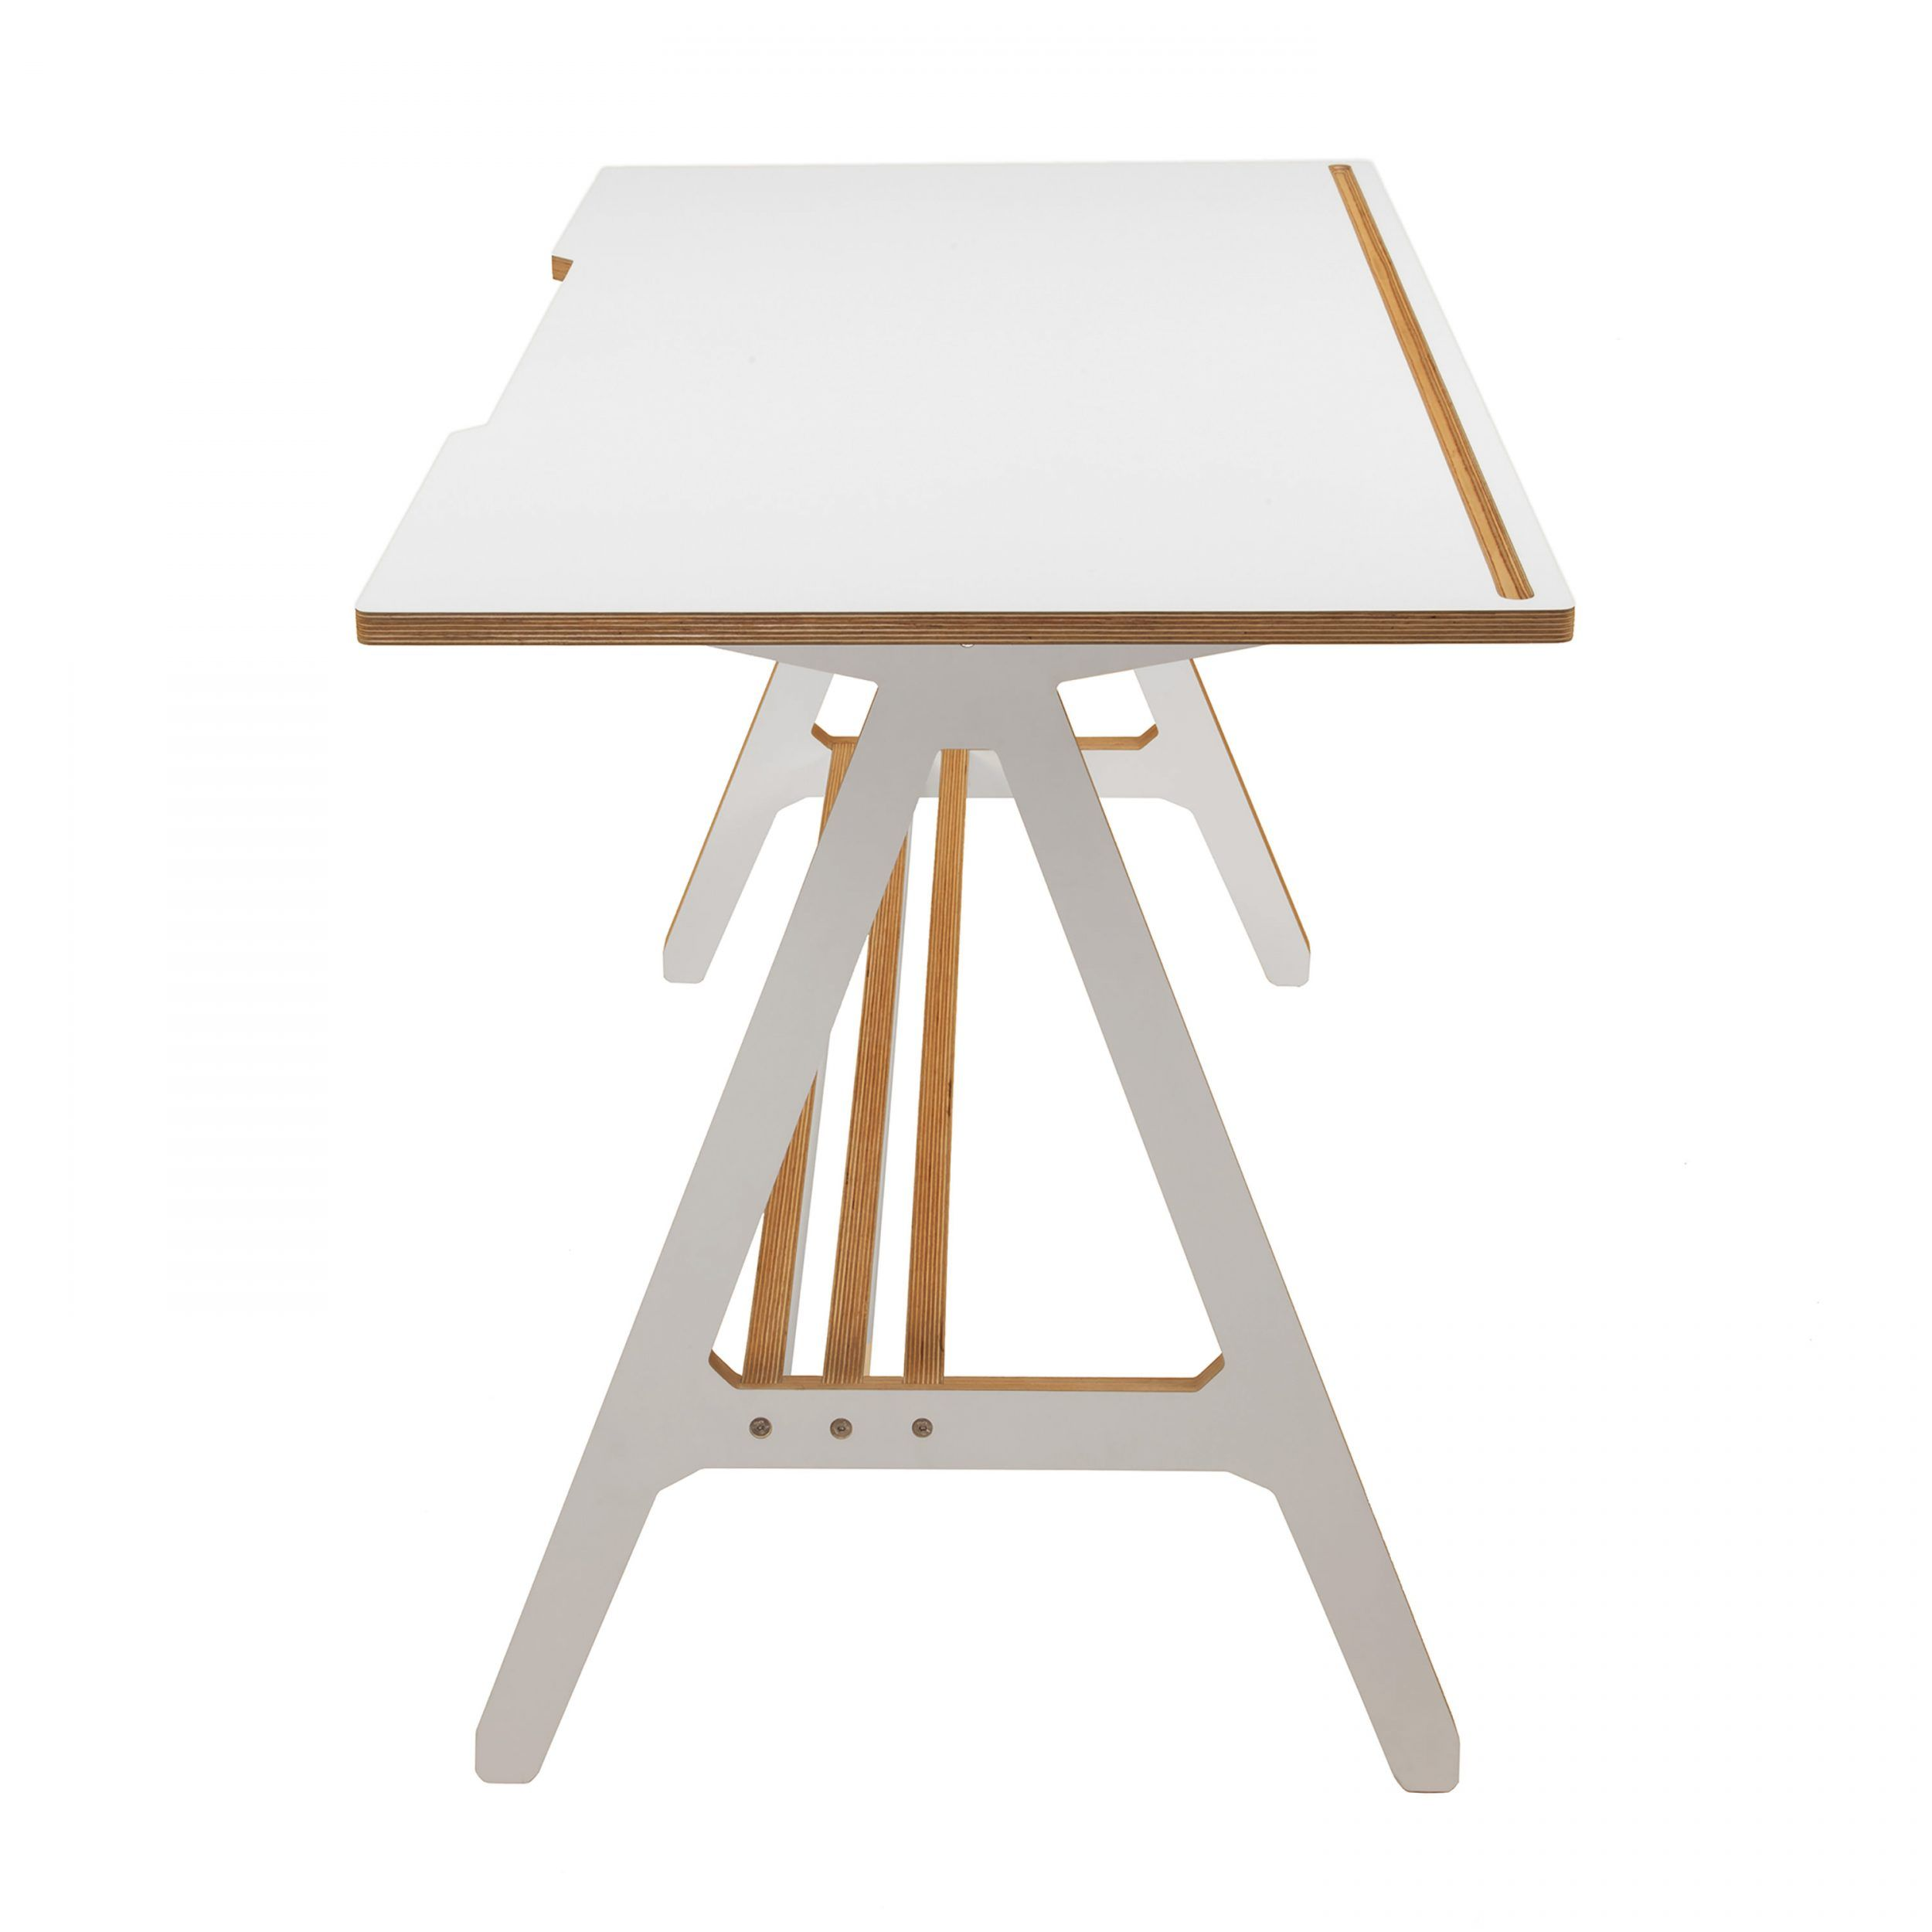 modern-wood-a-desk-white-ByALEX-006